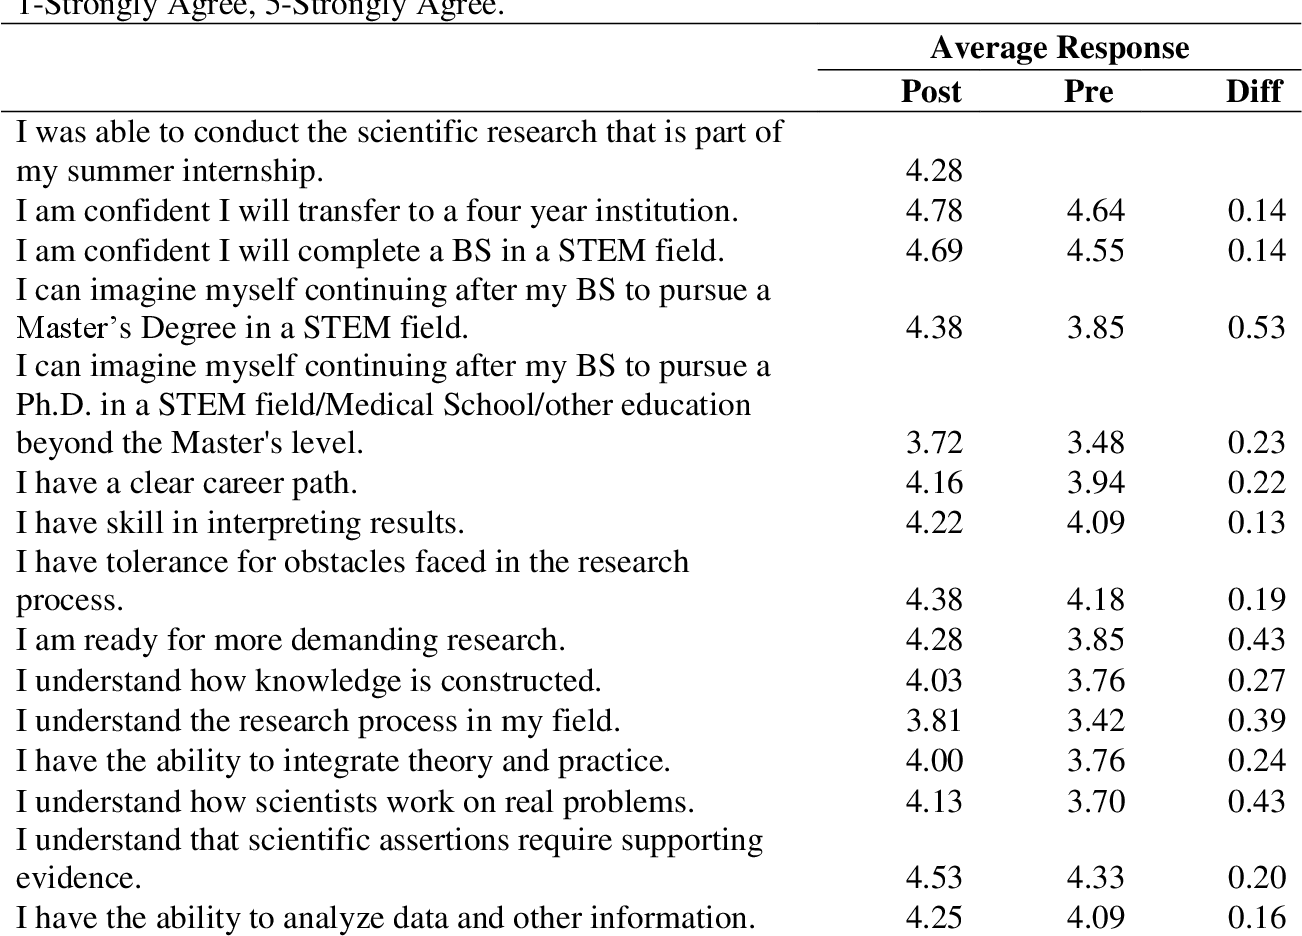 Table 3. Results of survey on student perceptions of skills and knowledge for academic and research success.